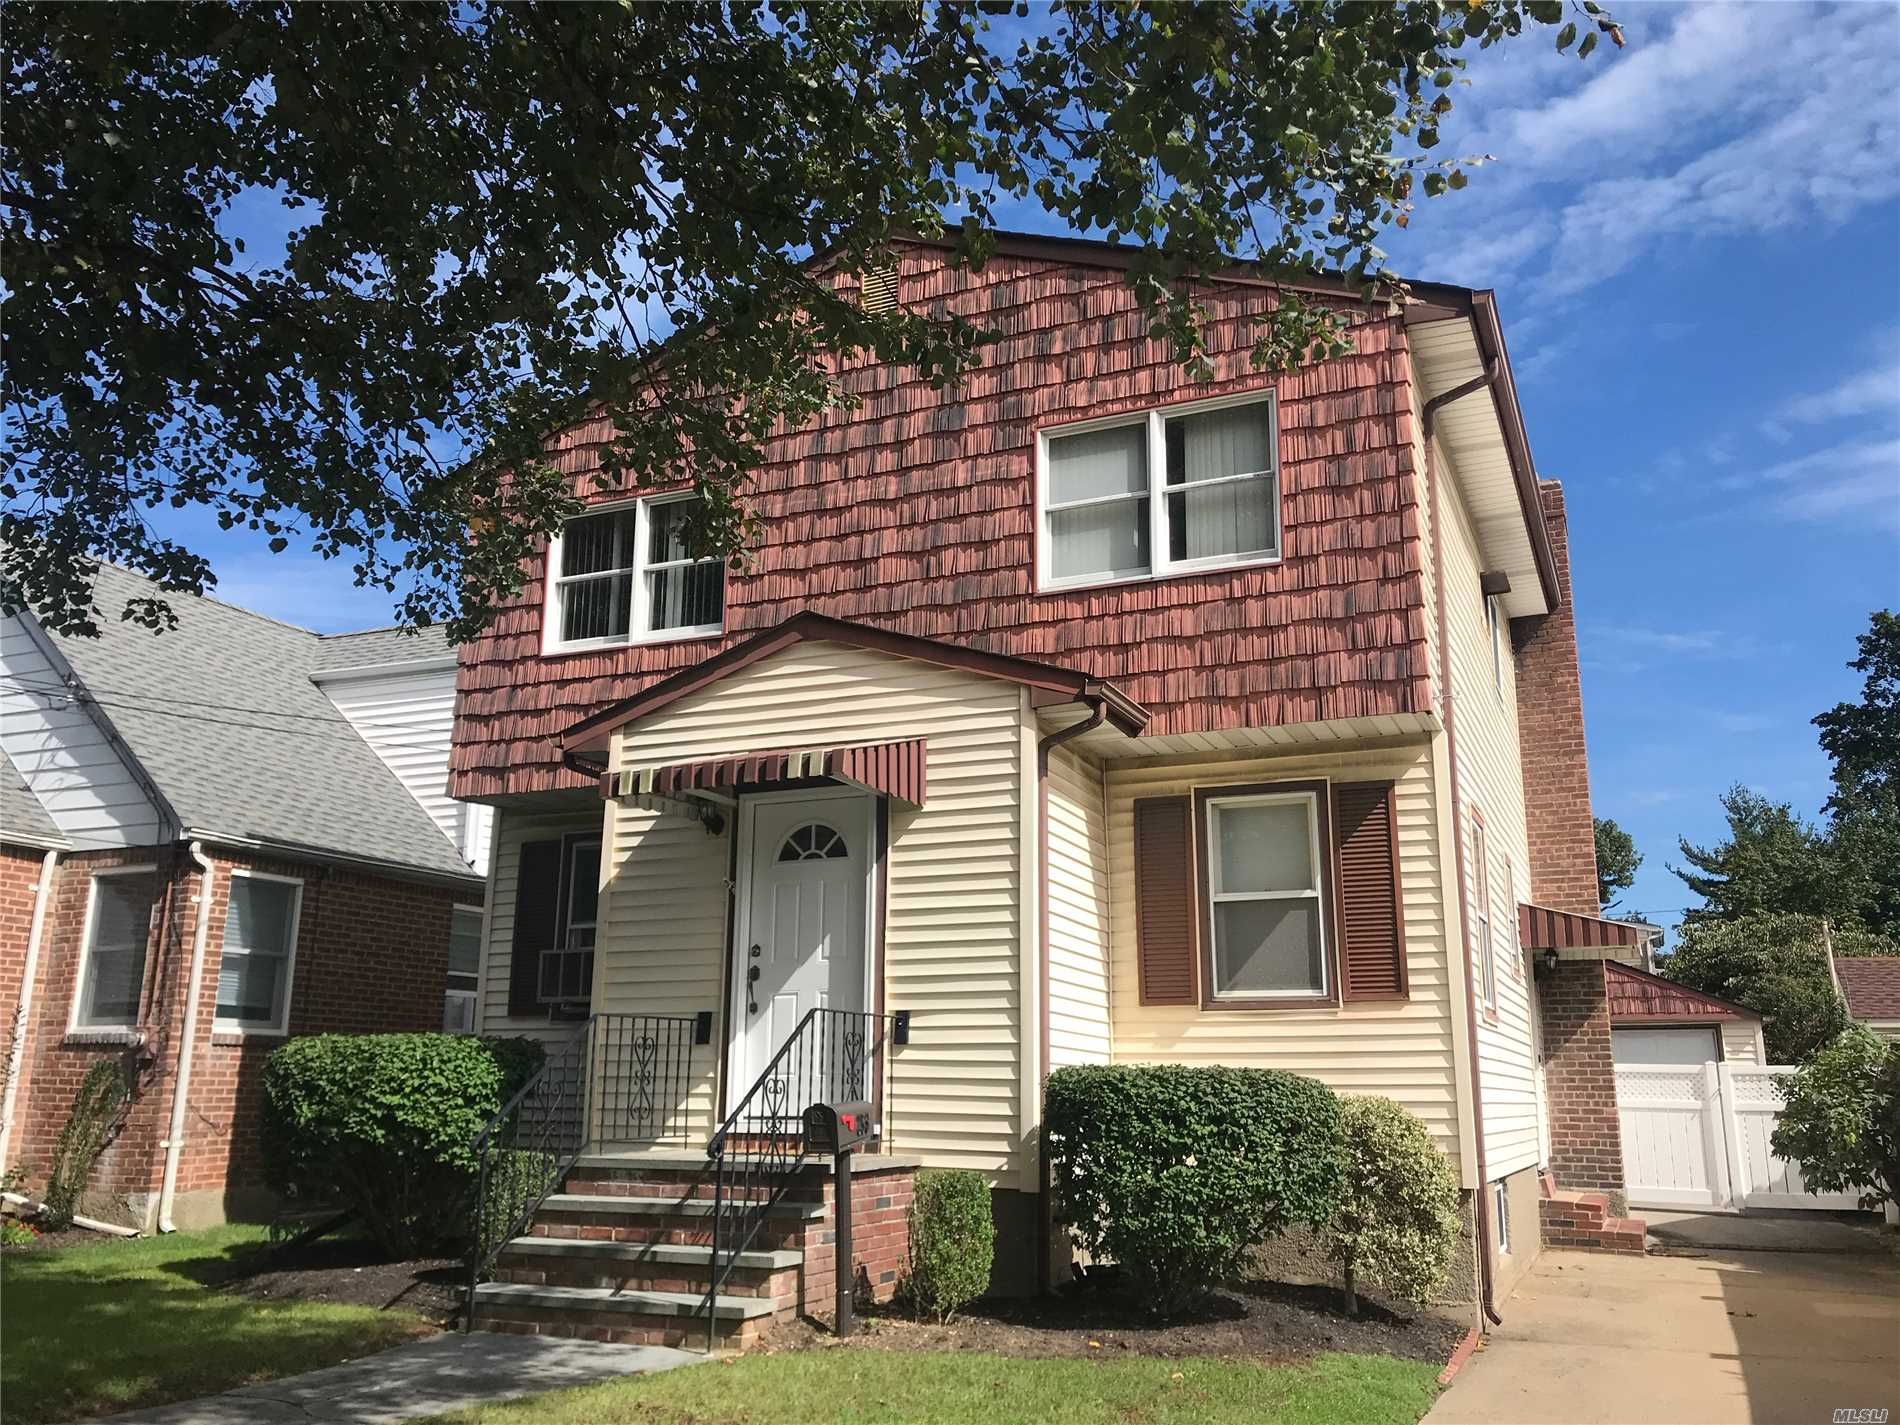 Classic Colonial In The Heart Of Franklin Square! This Home Boasts 4 Bedrooms, 2 Baths W/ A Large Eat In Kitchen, Full Dining Room And Living Room. A Full Finished Basement W/Ose Has Large Closets For Storage, Utility Room & Laundry Room. Room For Everyone Upstairs, 2 Large Bedrooms, And A Spacious Master W/Large Wic. Shiny Hardwood Floors Throughout The Open Main Floor. Loads Of Closet Space. Close Proximity To Parks, Schools And Transportation. Low Taxes! This Home Has It All!